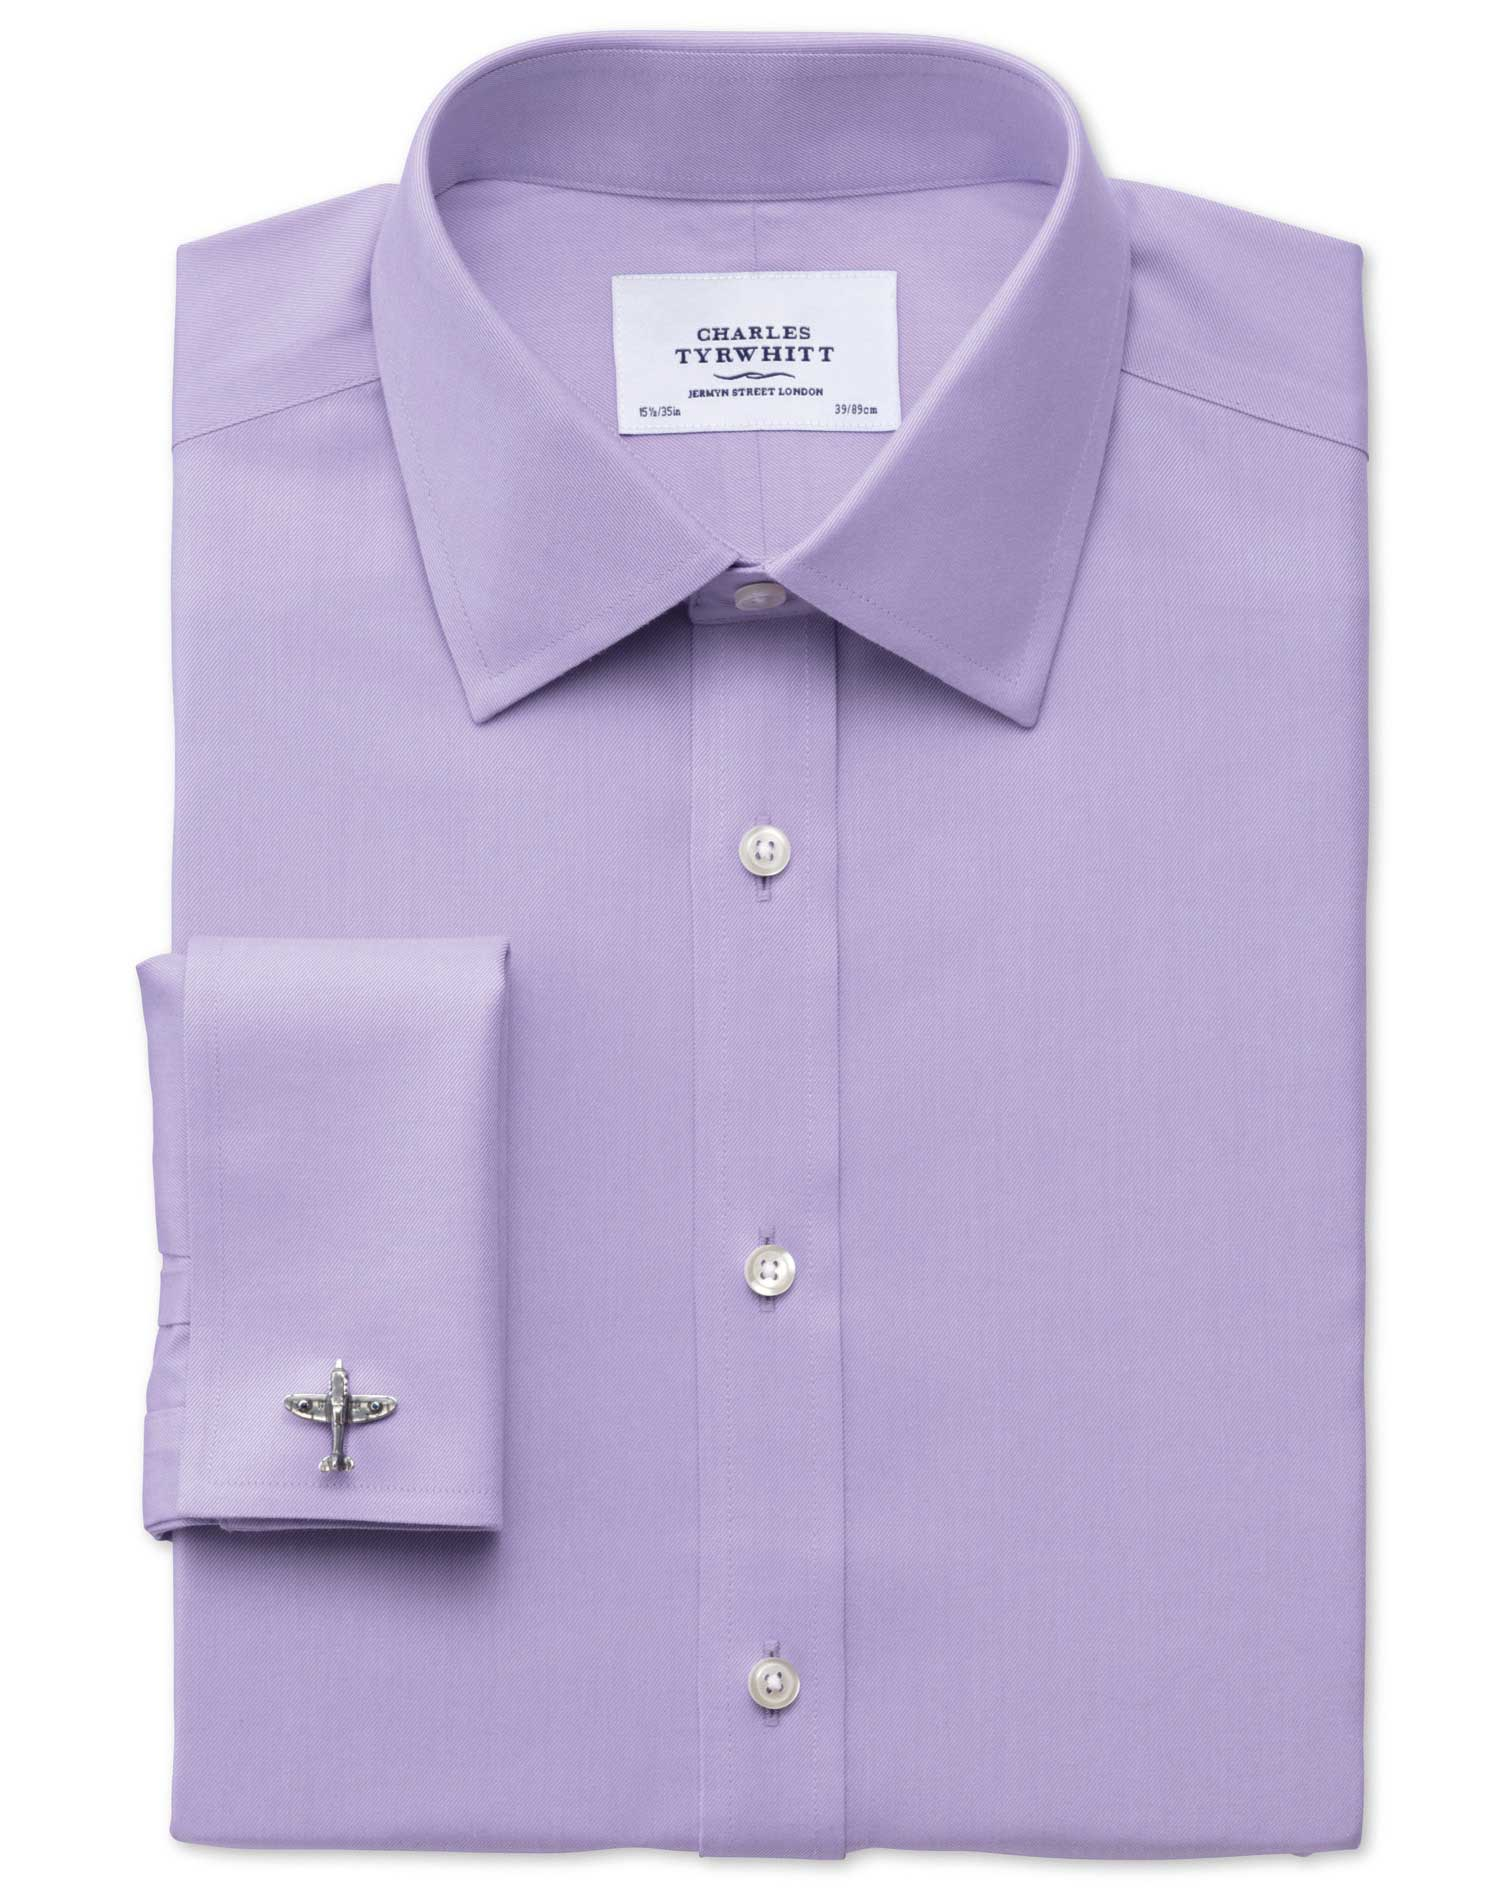 Extra Slim Fit Non-Iron Twill Lilac Cotton Formal Shirt Double Cuff Size 15/35 by Charles Tyrwhitt